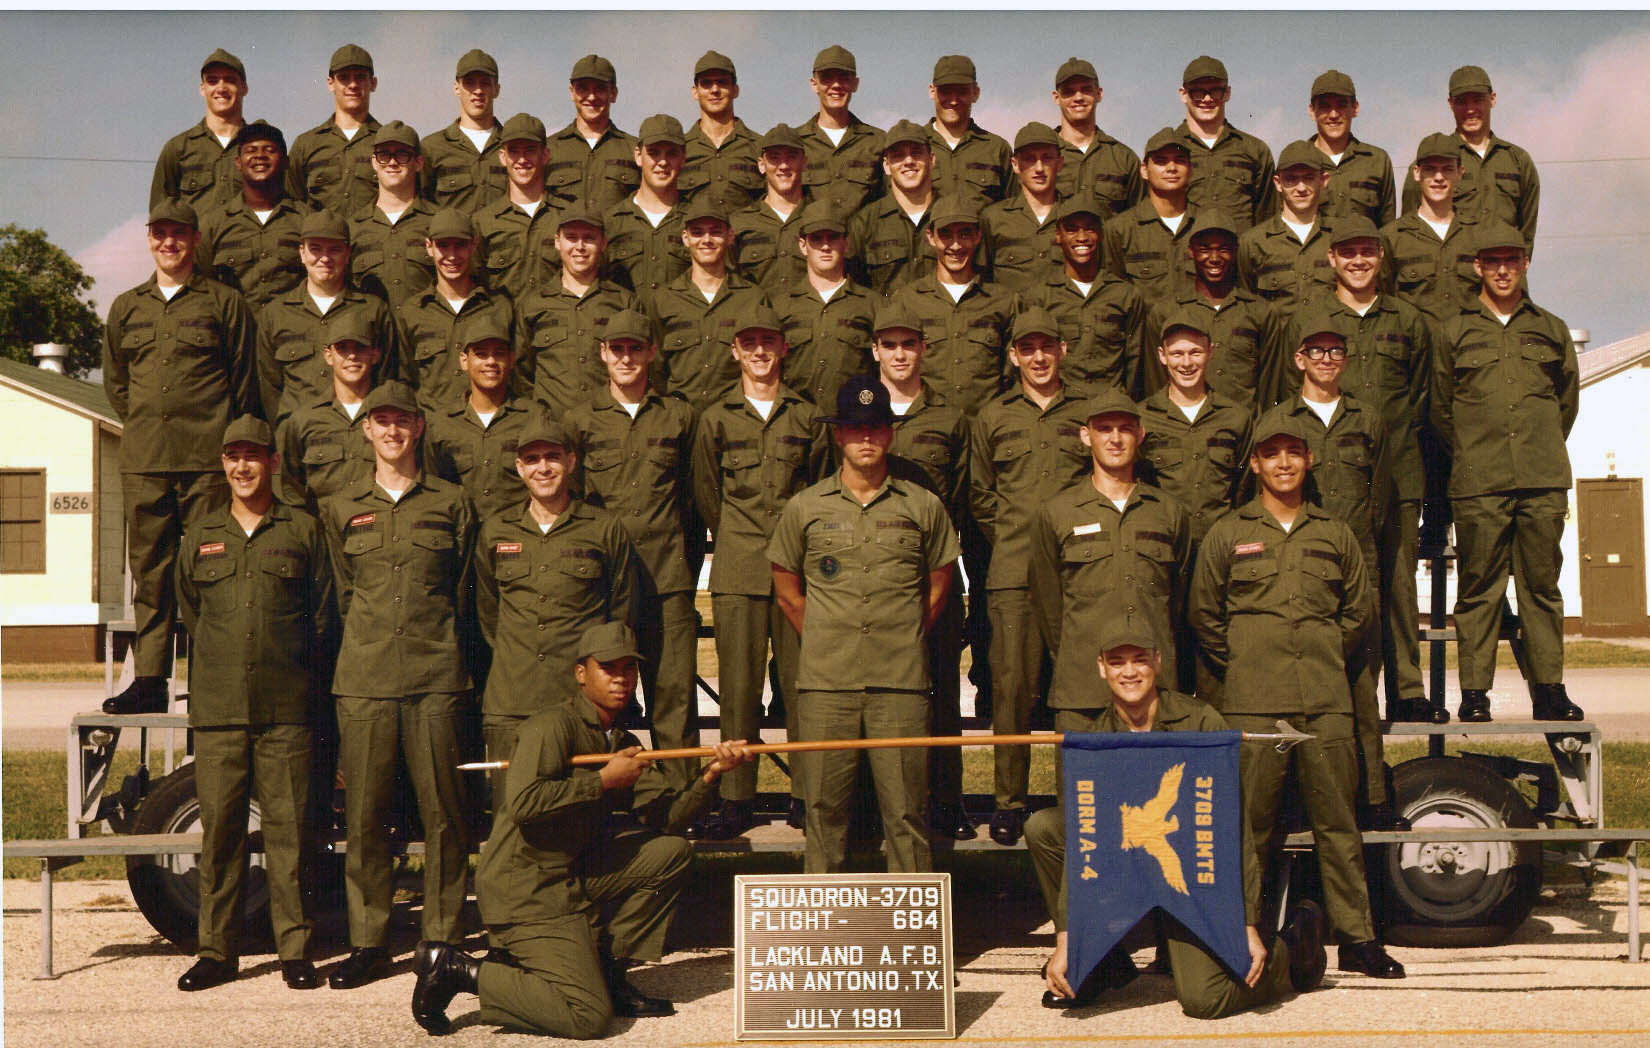 Air Force basic training group photos online